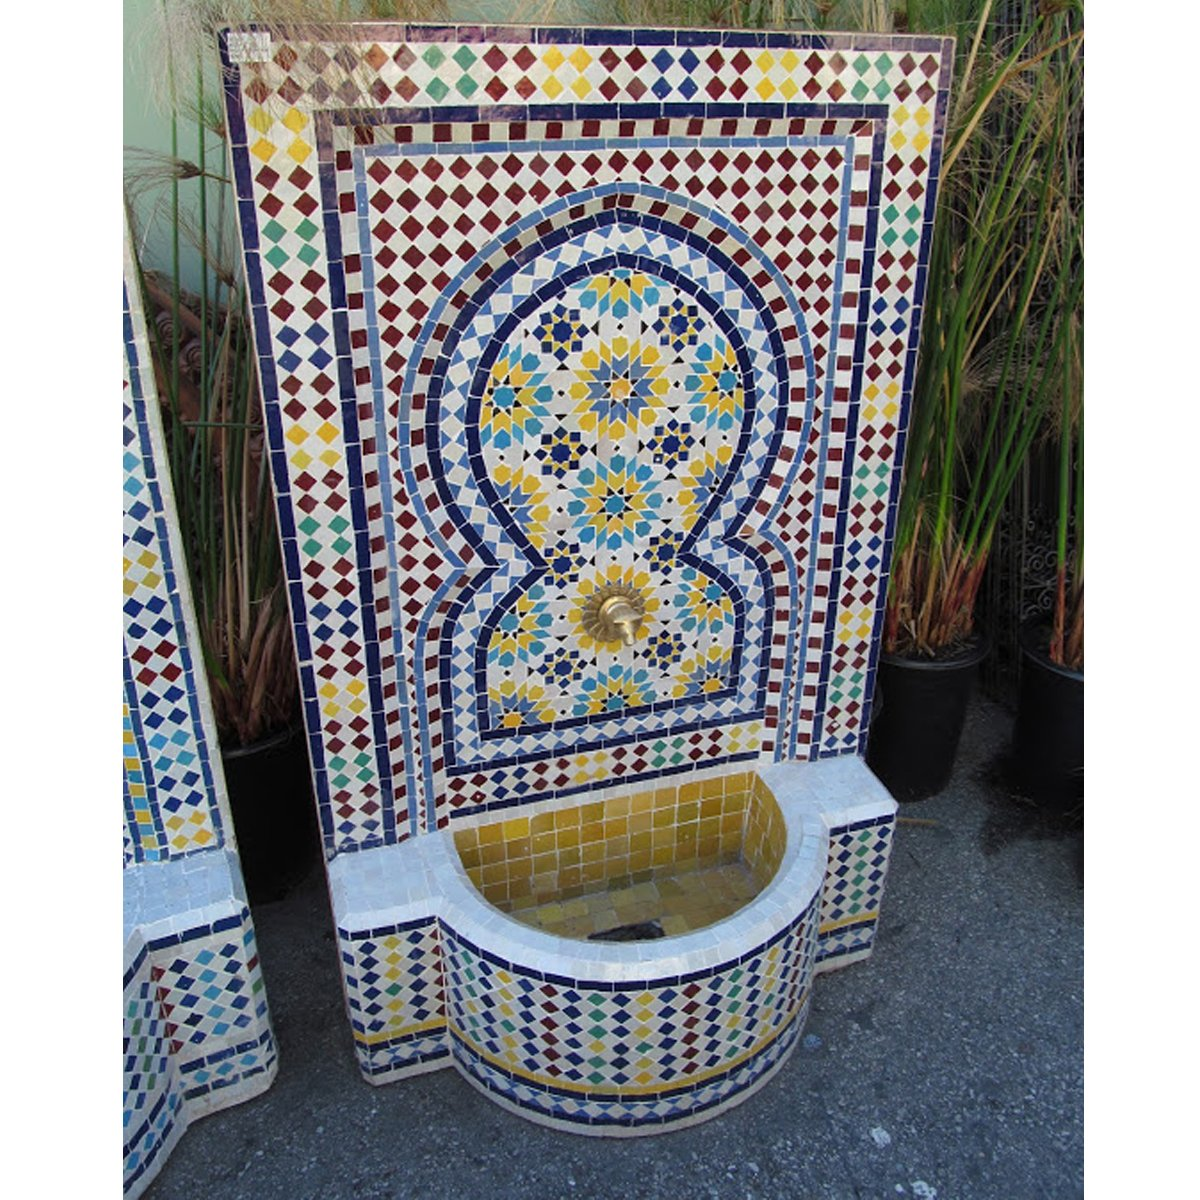 Mosaic Tile Fountain, Morocco by Design MIX Furniture